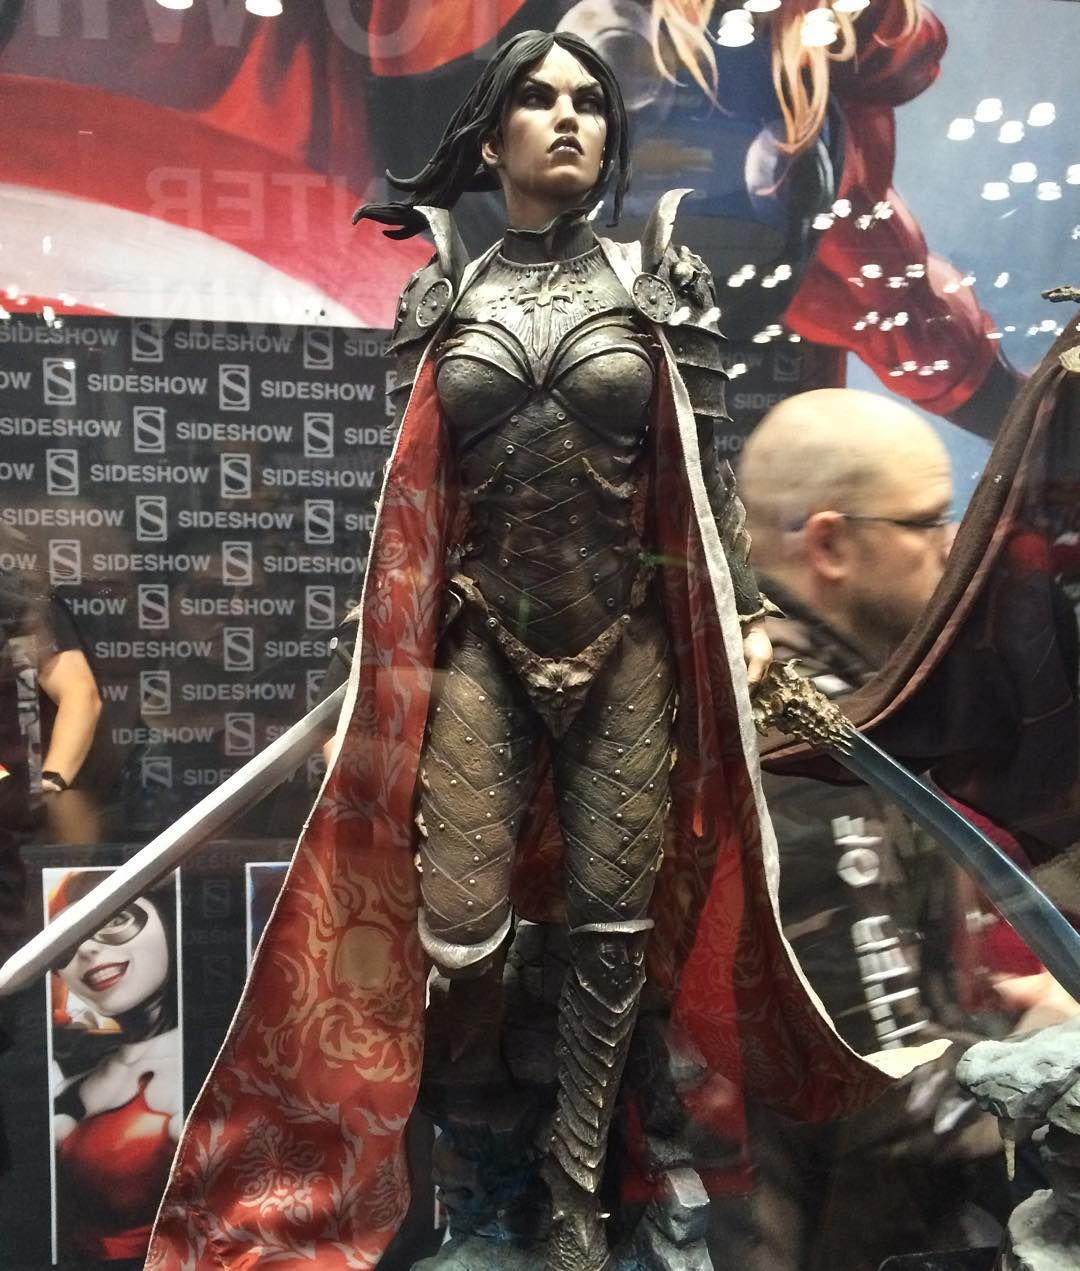 More from #SideshowCollectibles :  Not sure what these are from but they're sick lookin'! #NewYorkComicCon #NewYorkComicCon2015 #NYCC #NYCC15 #statue